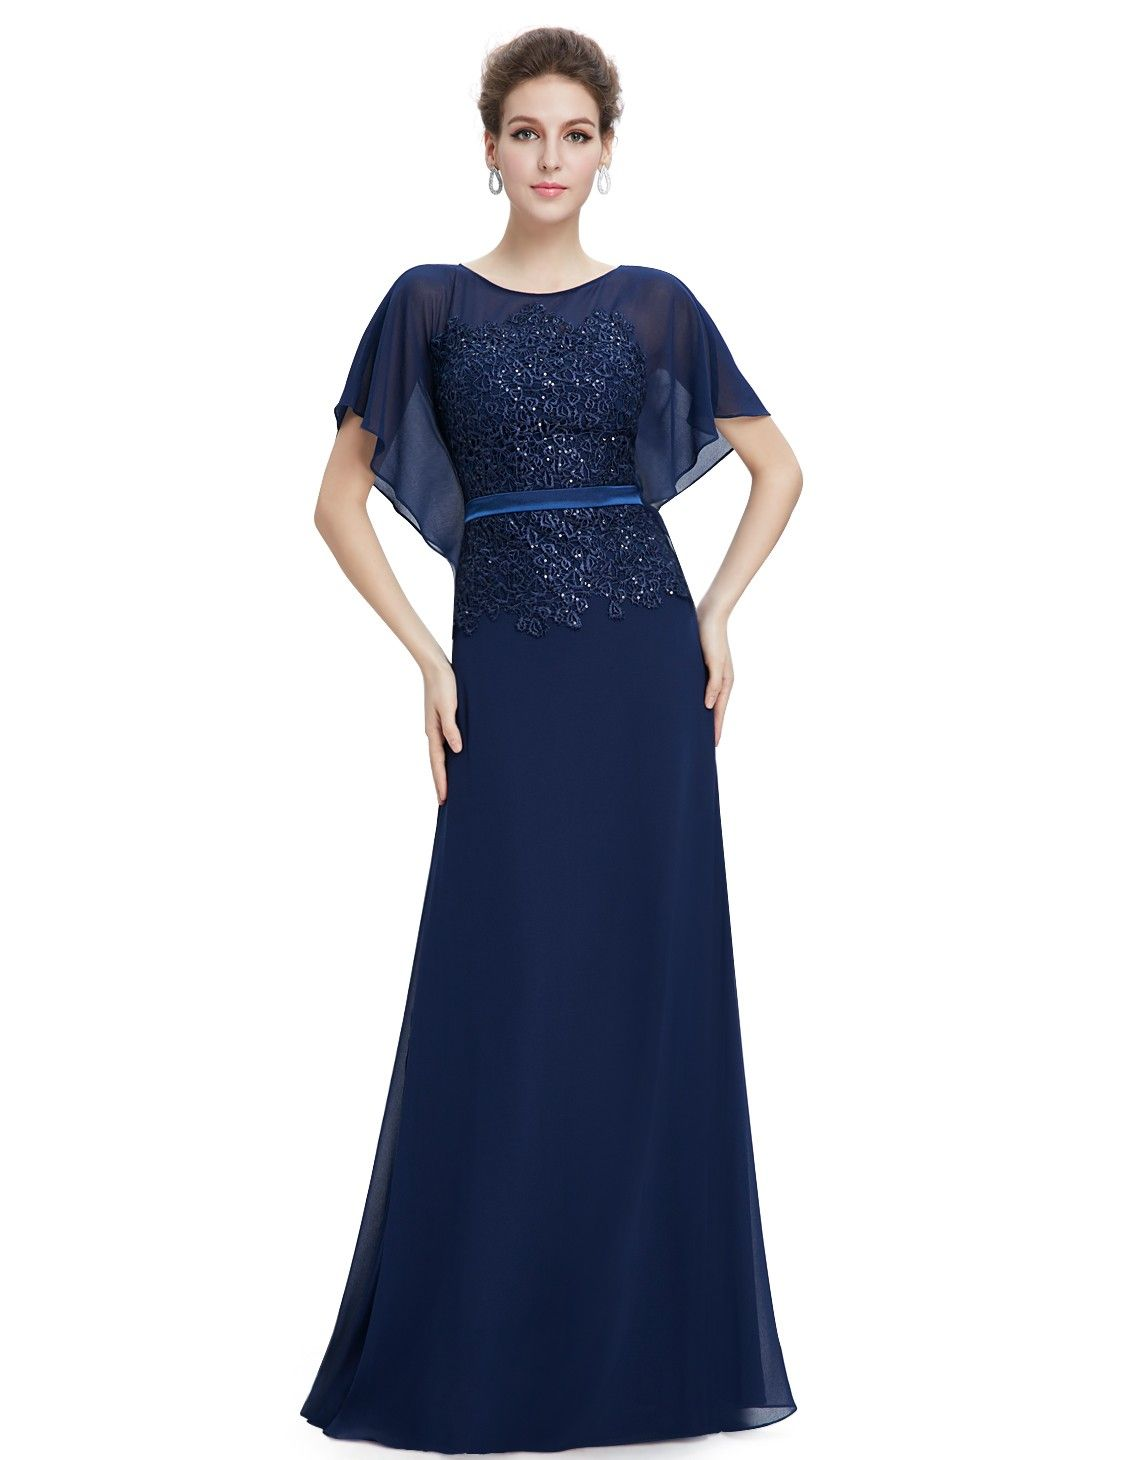 8ff6ec5a74 Floor Length Formal Evening Gown with Sleeves | the fix | Dresses ...